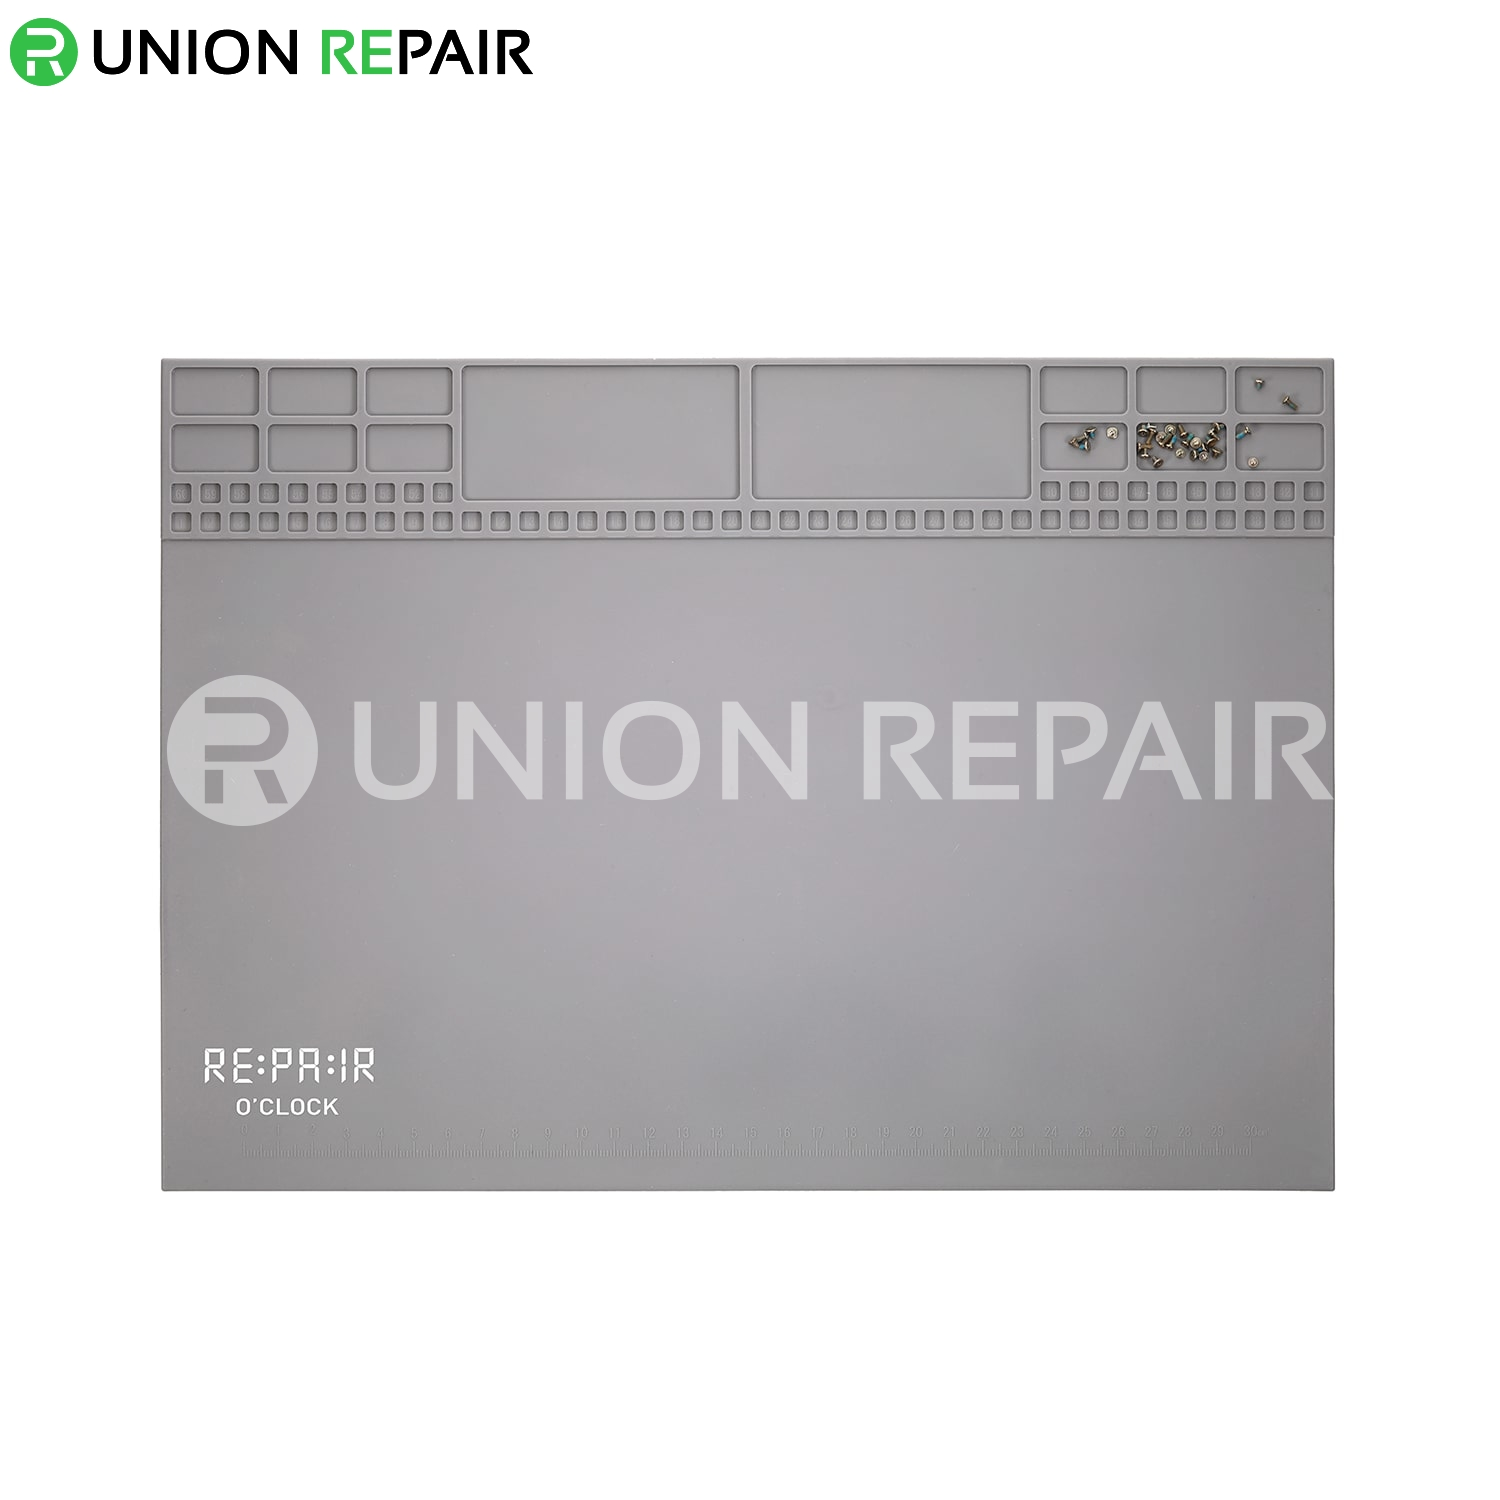 REPAIR OCLOCK Maintenance Silicone Pad with Scaleplate 350mmx255mm